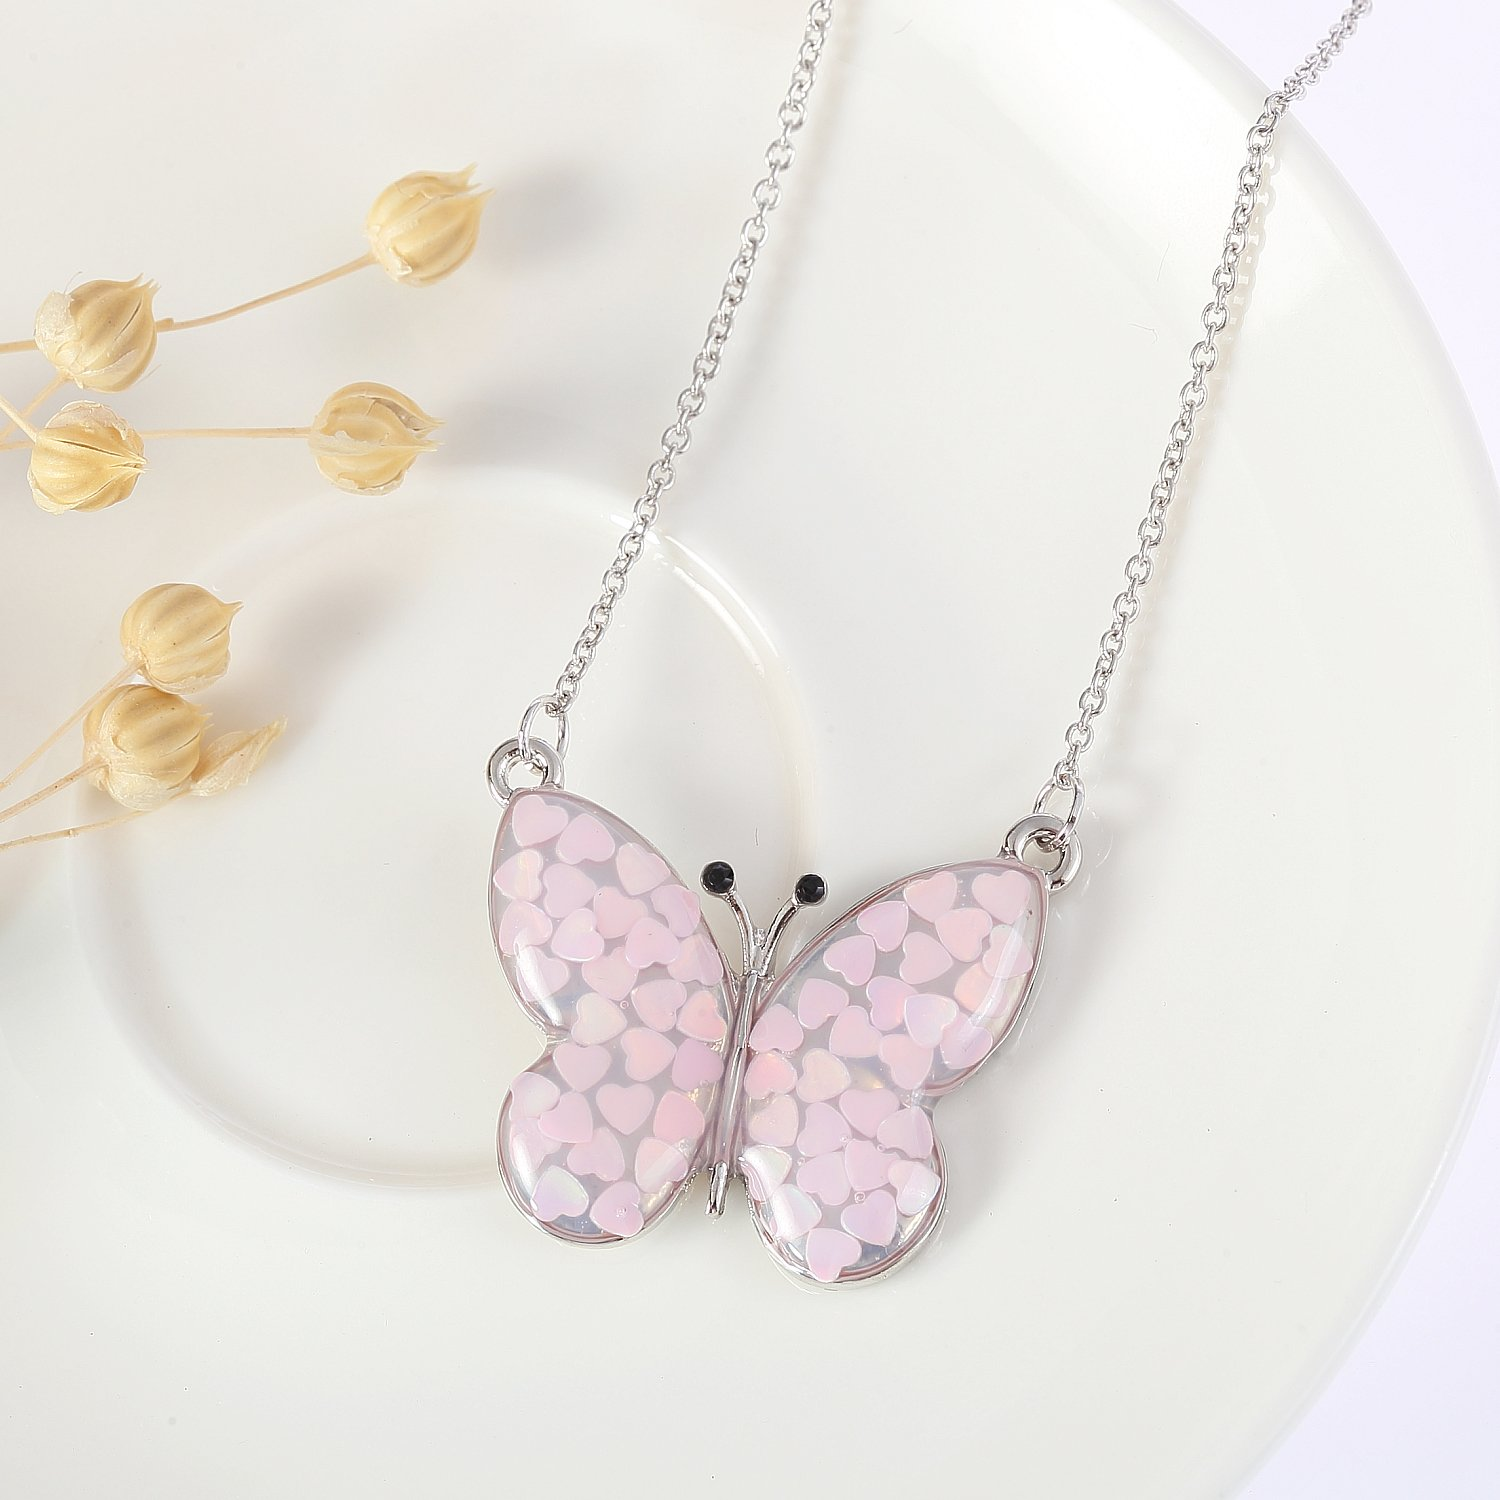 Lemonage Butterfly Necklaces for Girls Kids with Stunning Alloy Pendant Necklace, Children 3+ (Pink) by Lemonage (Image #5)